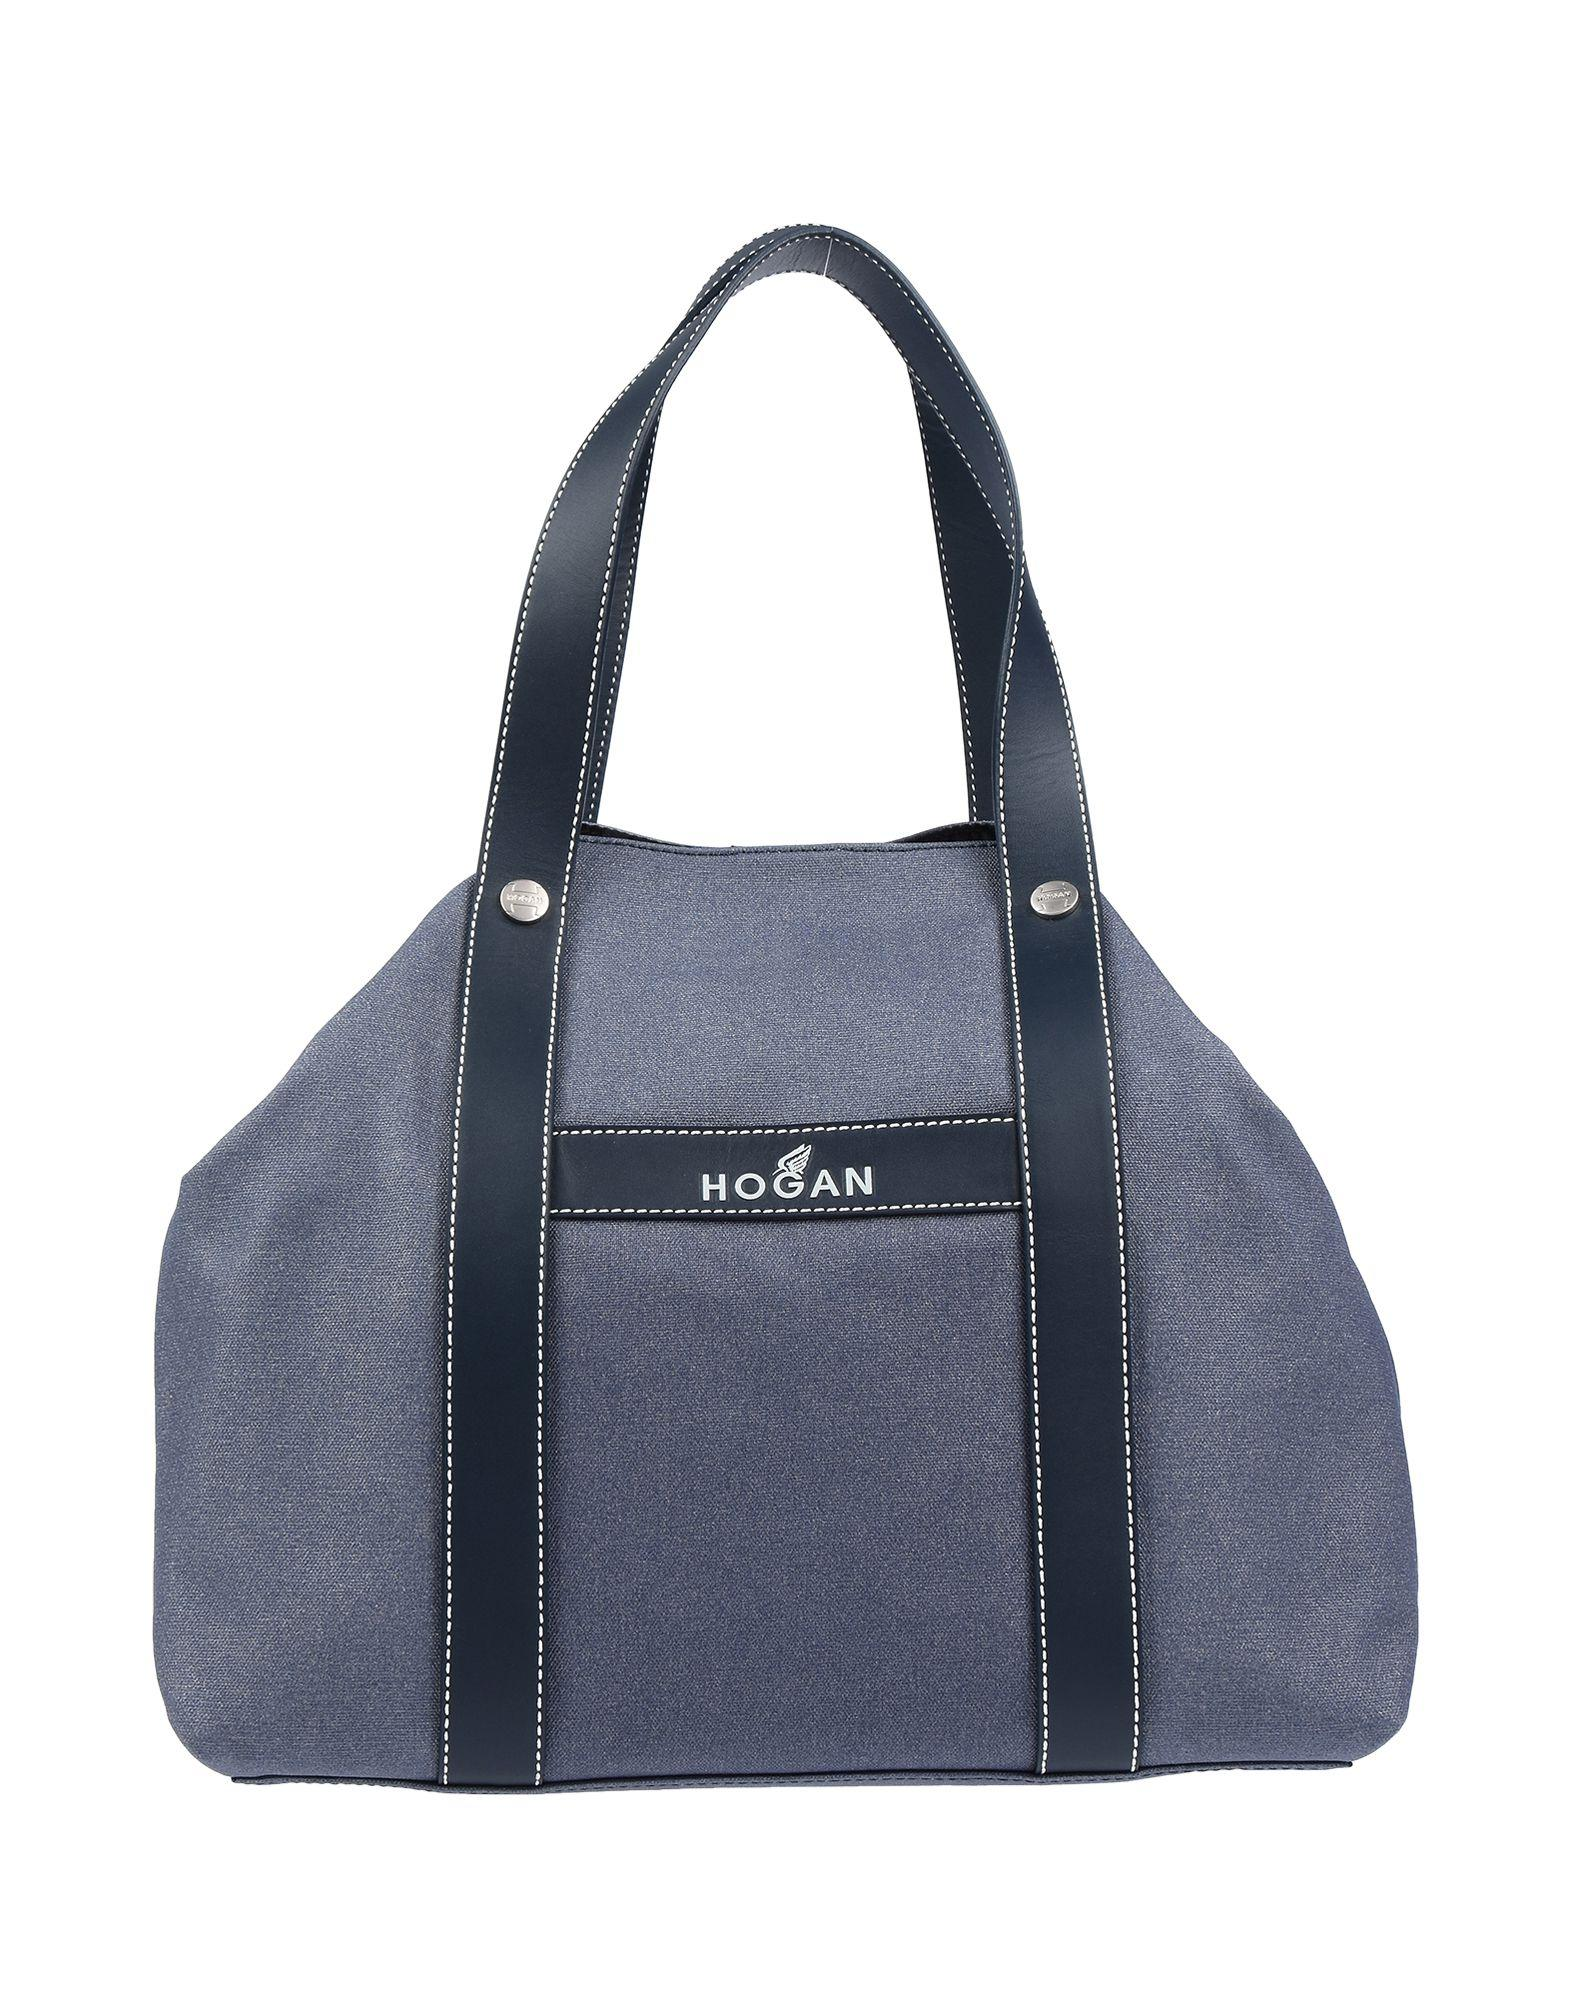 Lyst - Hogan Handbag in Blue f85f05ebe9f2d